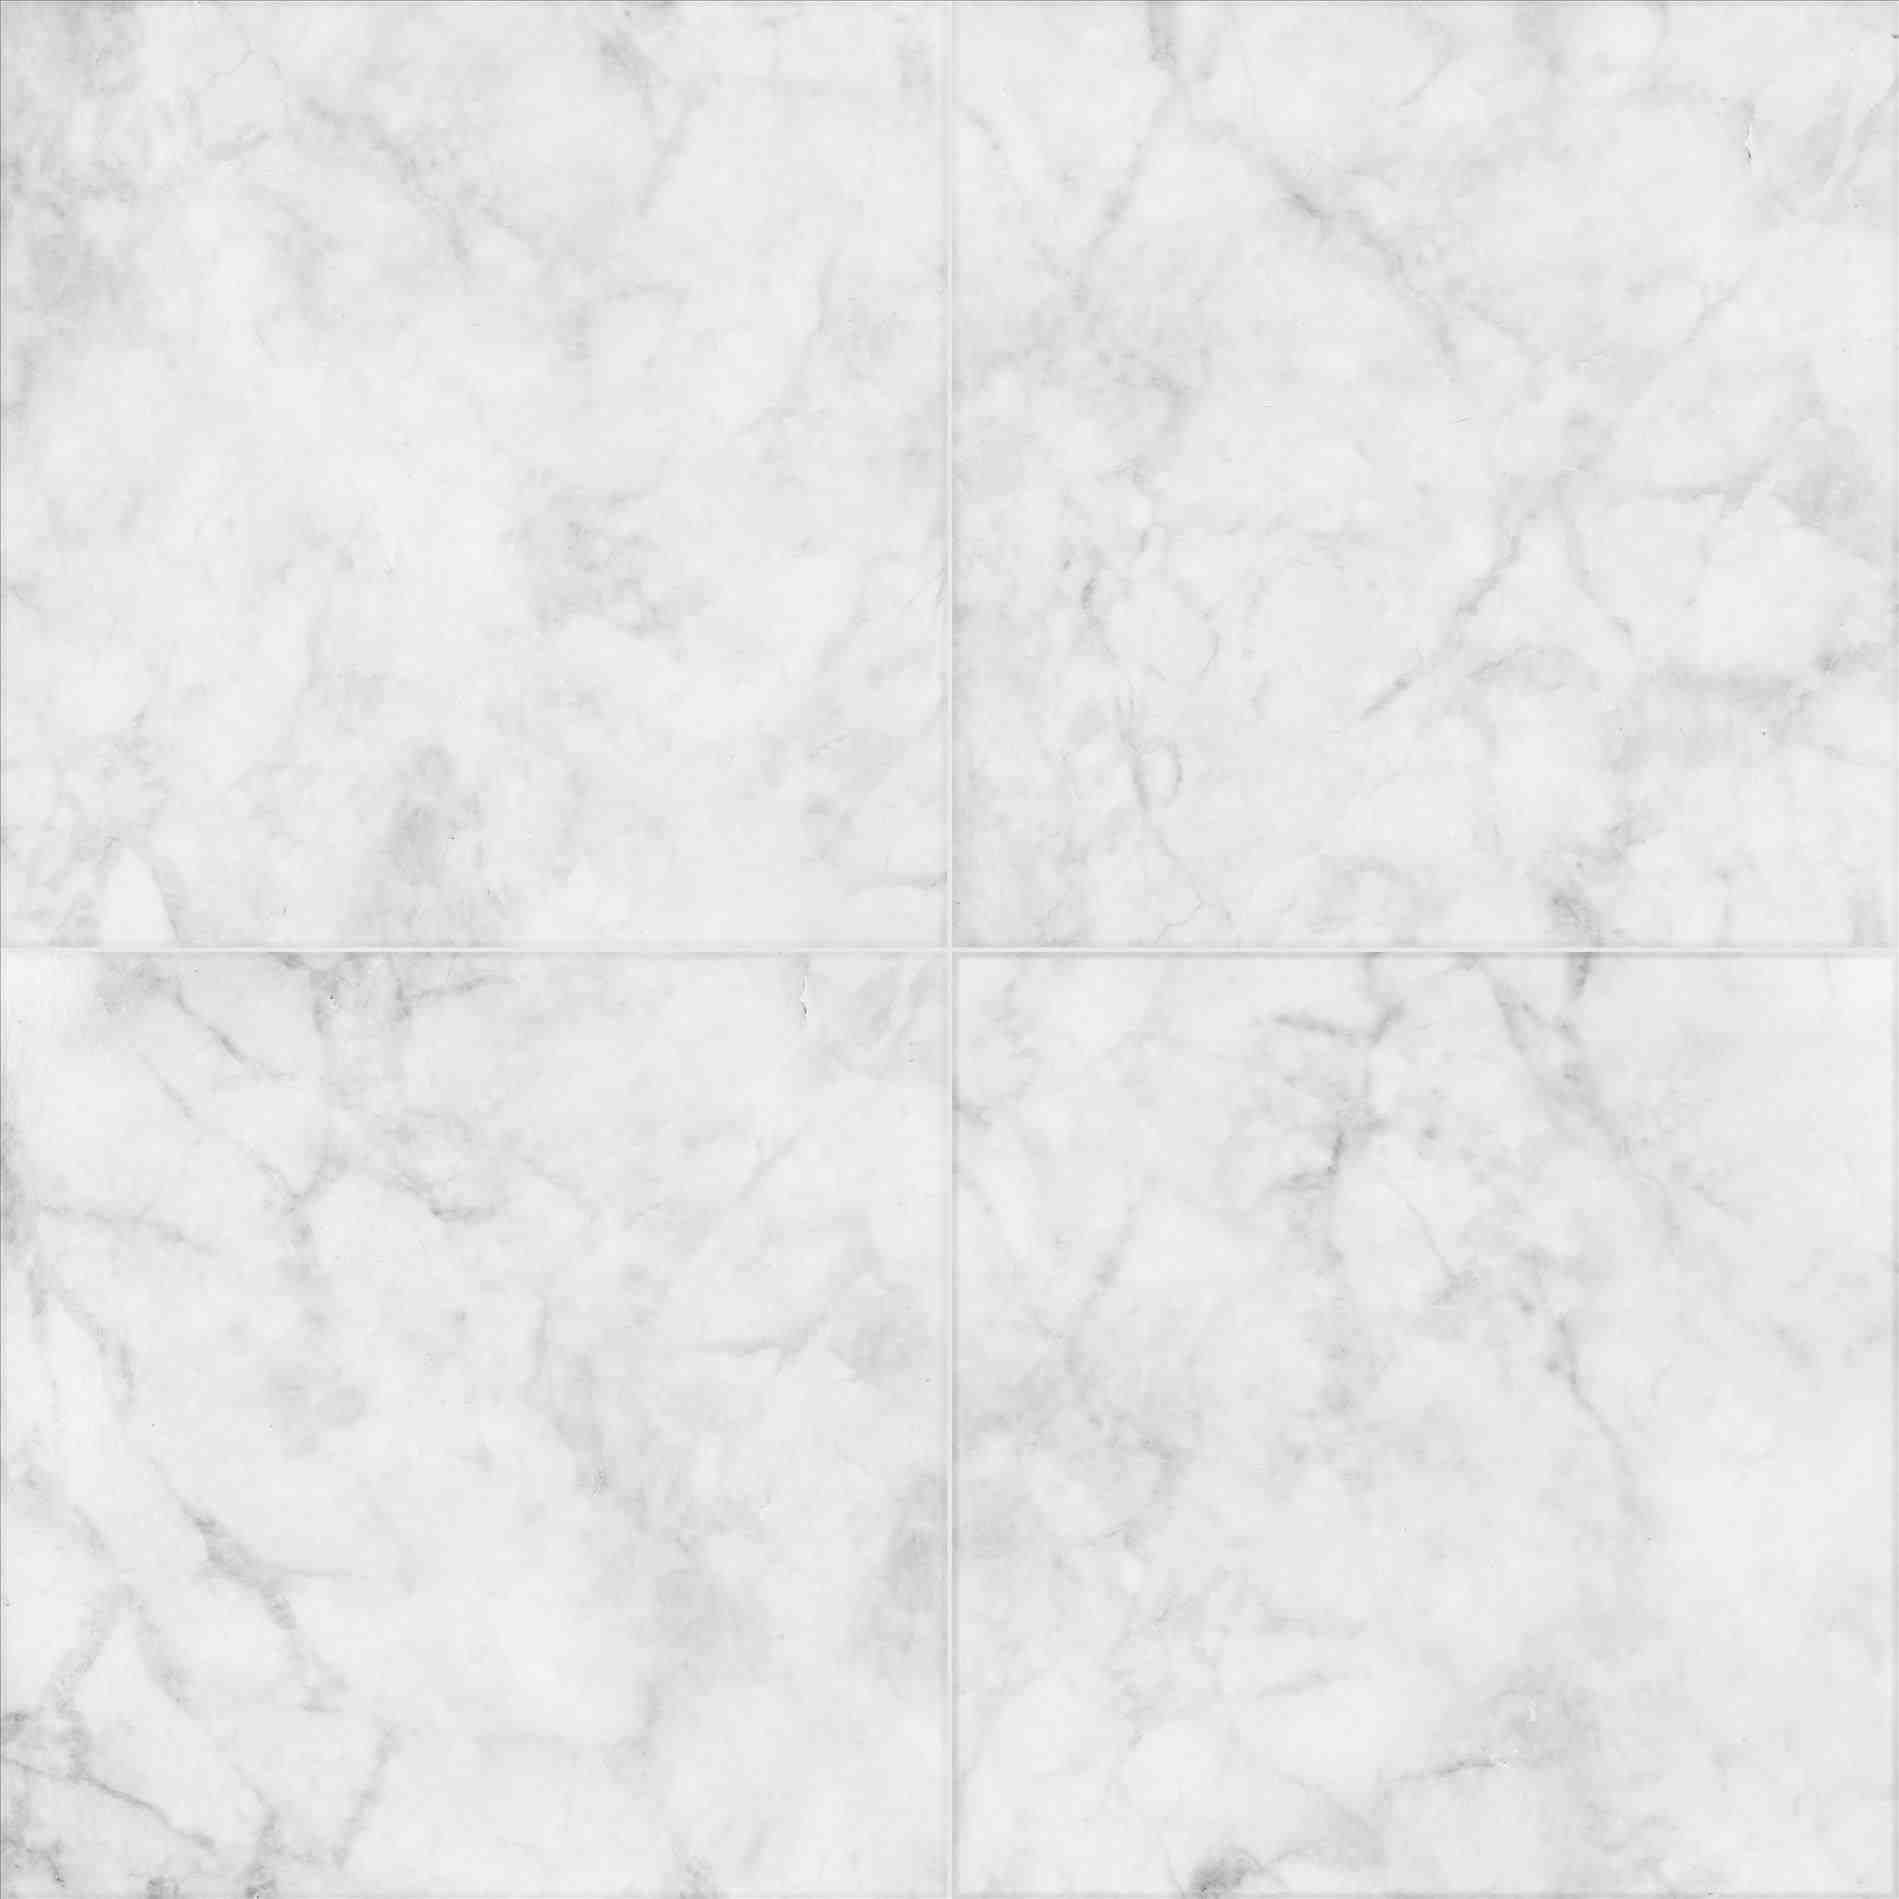 bathroom floor tile texture. Exellent Bathroom This Bathroom Floor Tiles Texture Seamless  With Swirl Pattern  Picture Free Contemporary White Throughout Bathroom Floor Tile Texture A